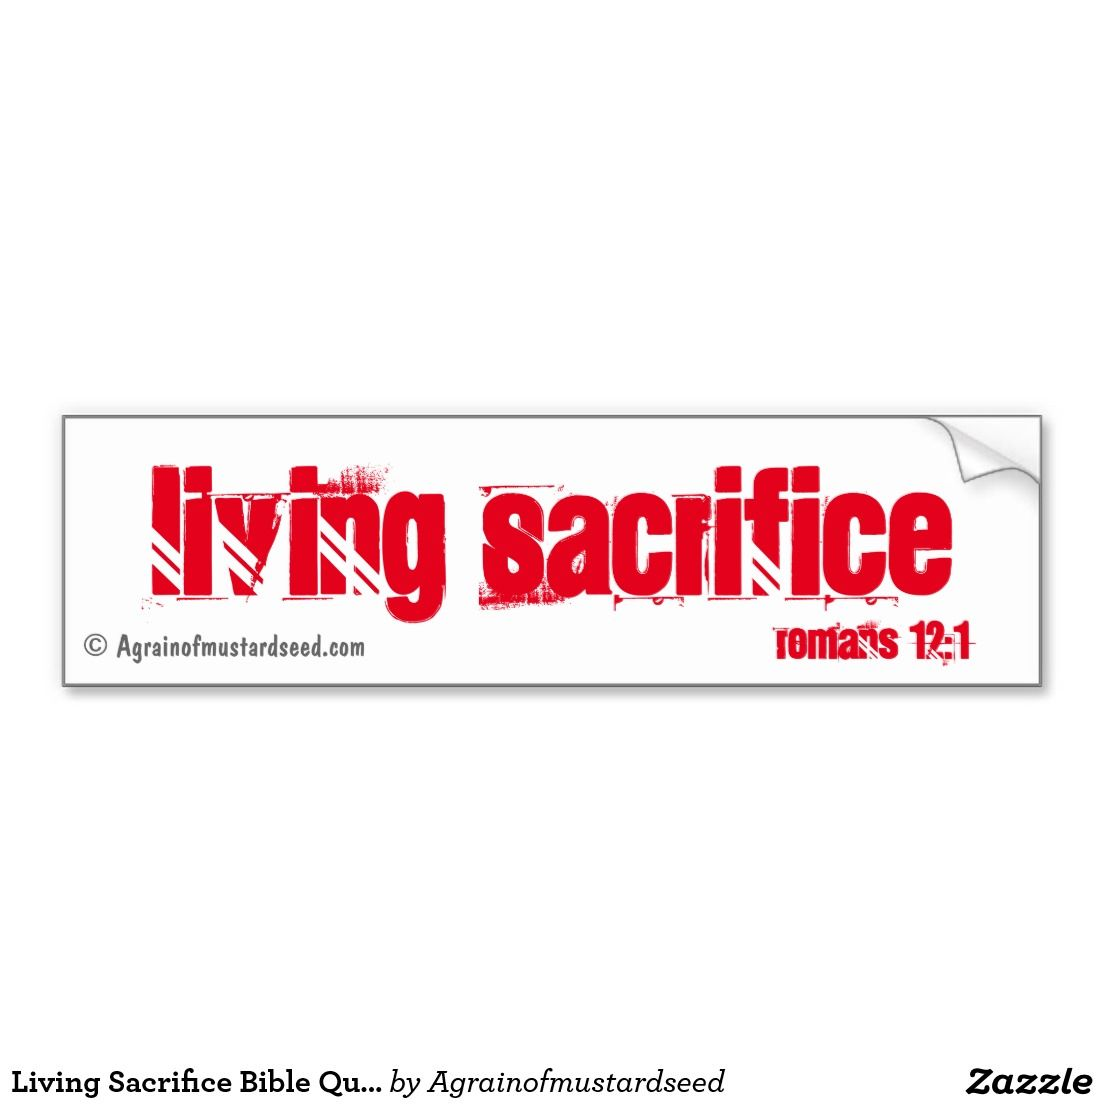 Living sacrifice bible quotes car bumper sticker